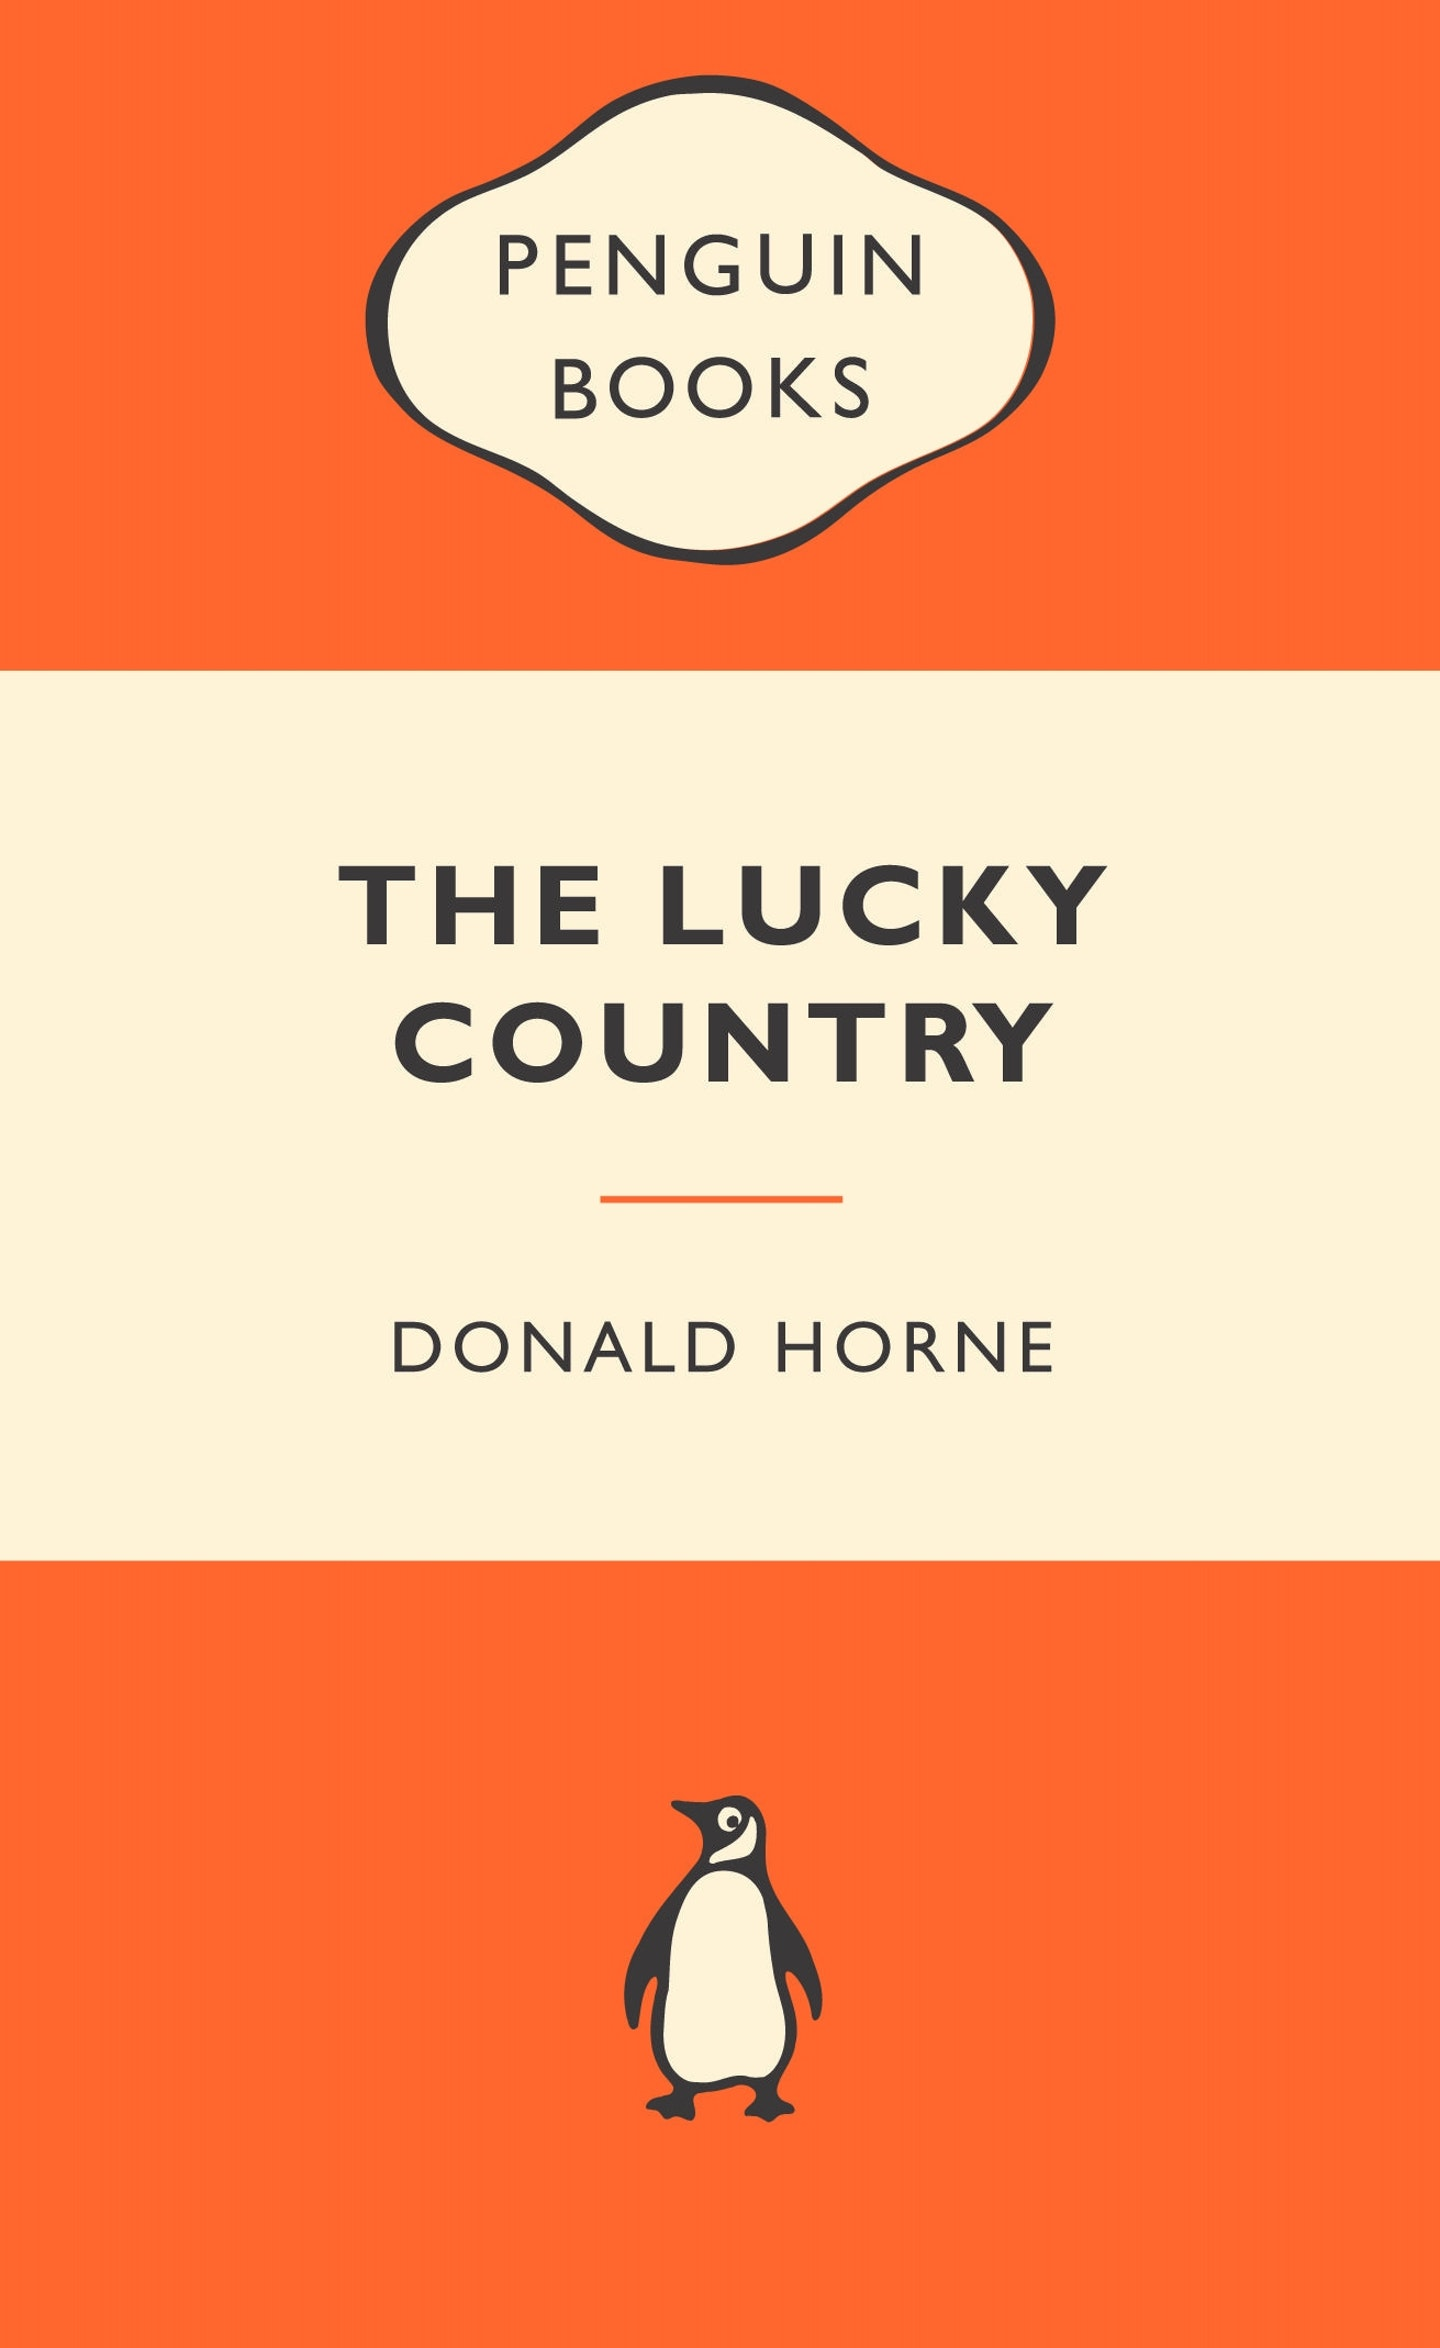 the lucky country  popular penguins